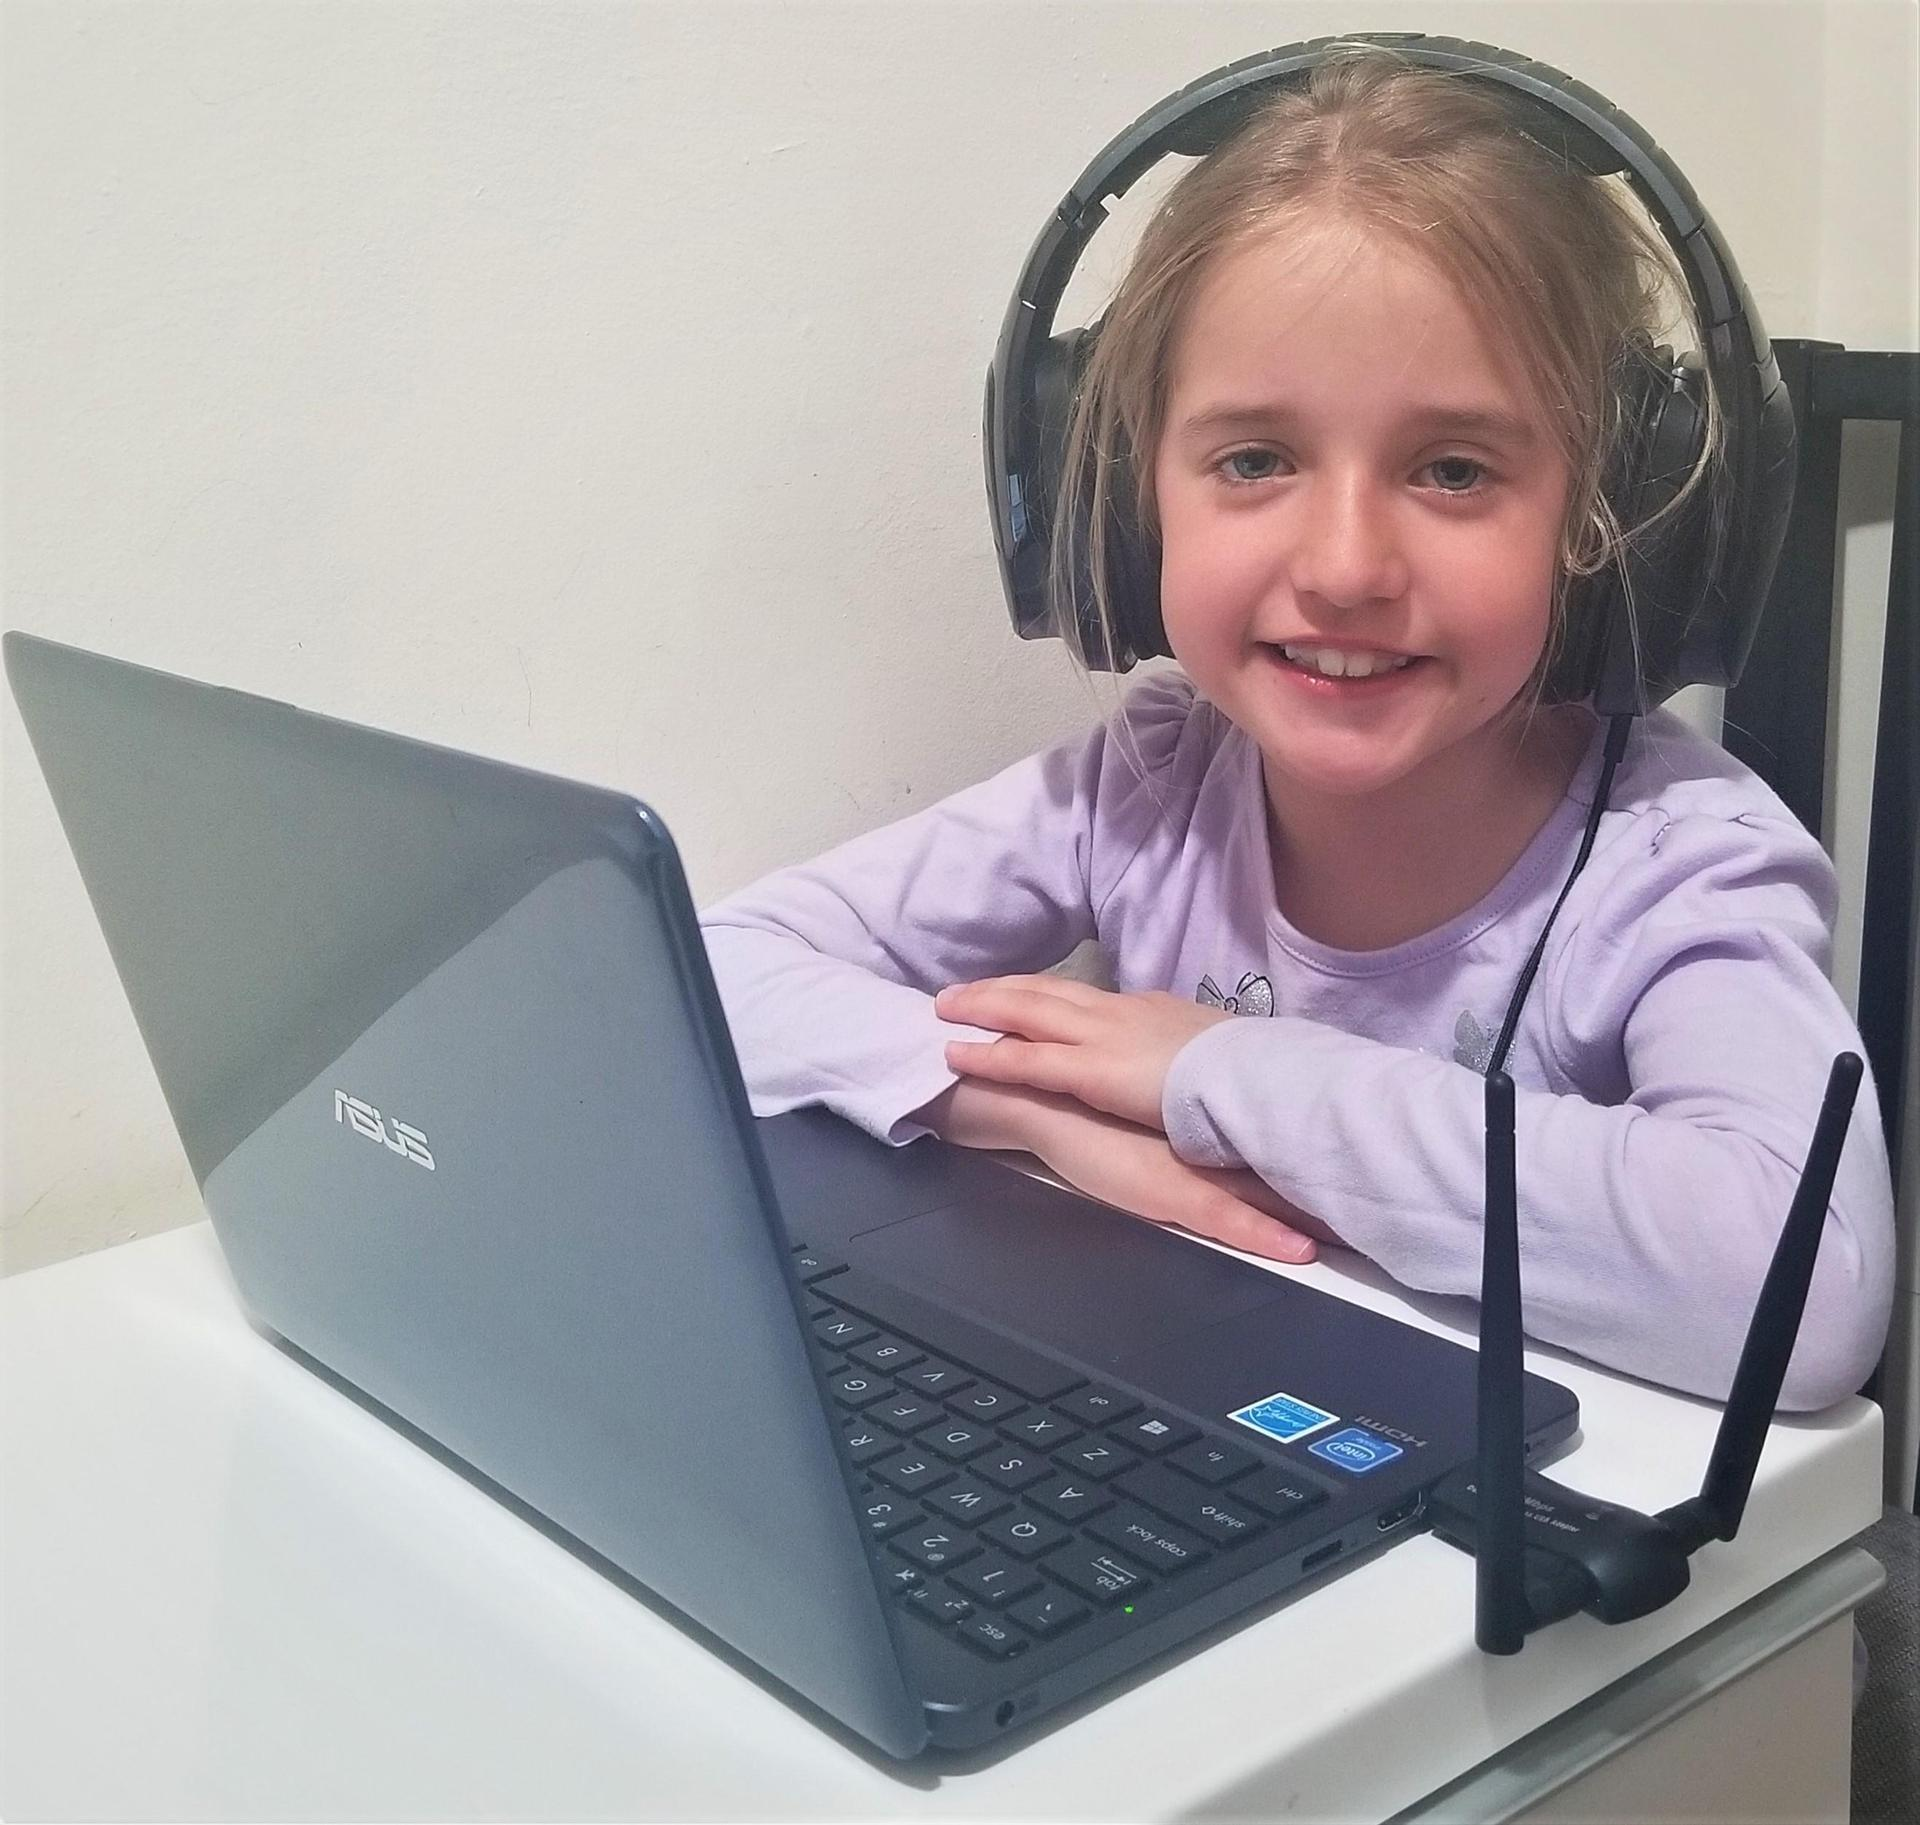 Student at home during remote learning. She is wearing headphones and looking at her laptop.